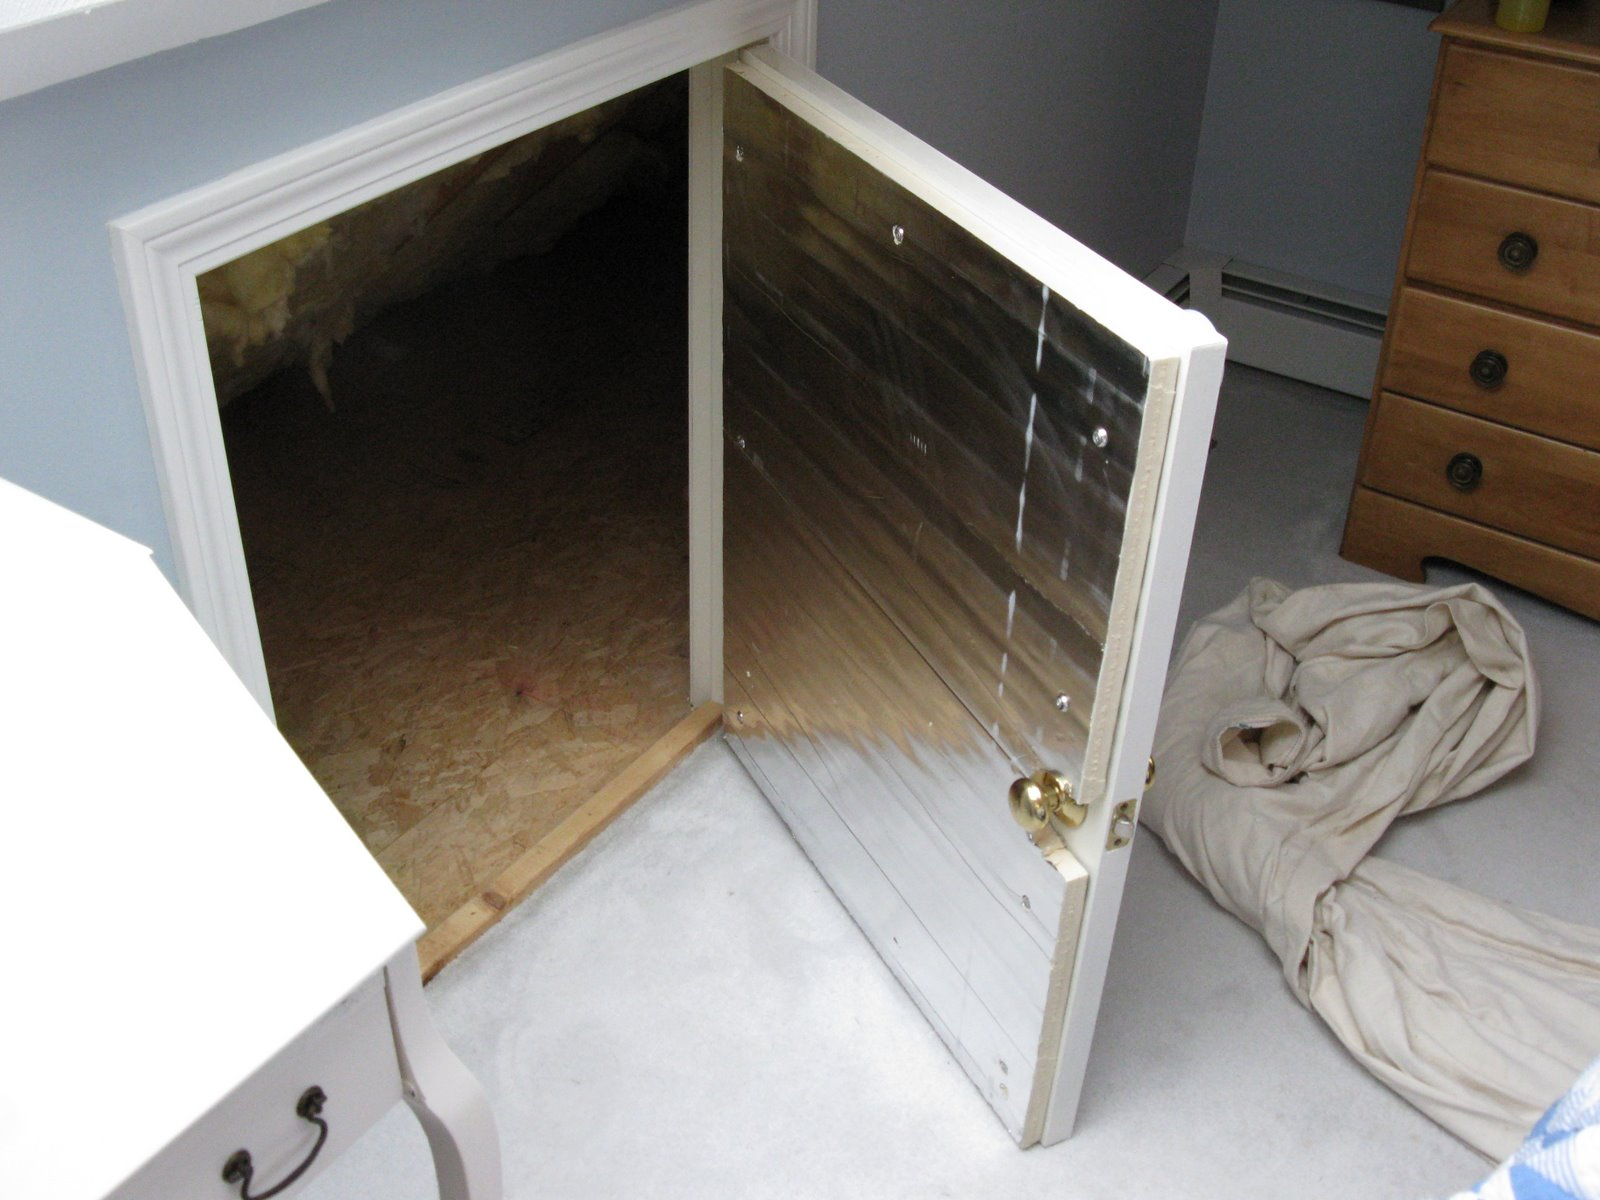 How to insulate a crawlspace door a concord carpenter for Front door insulation